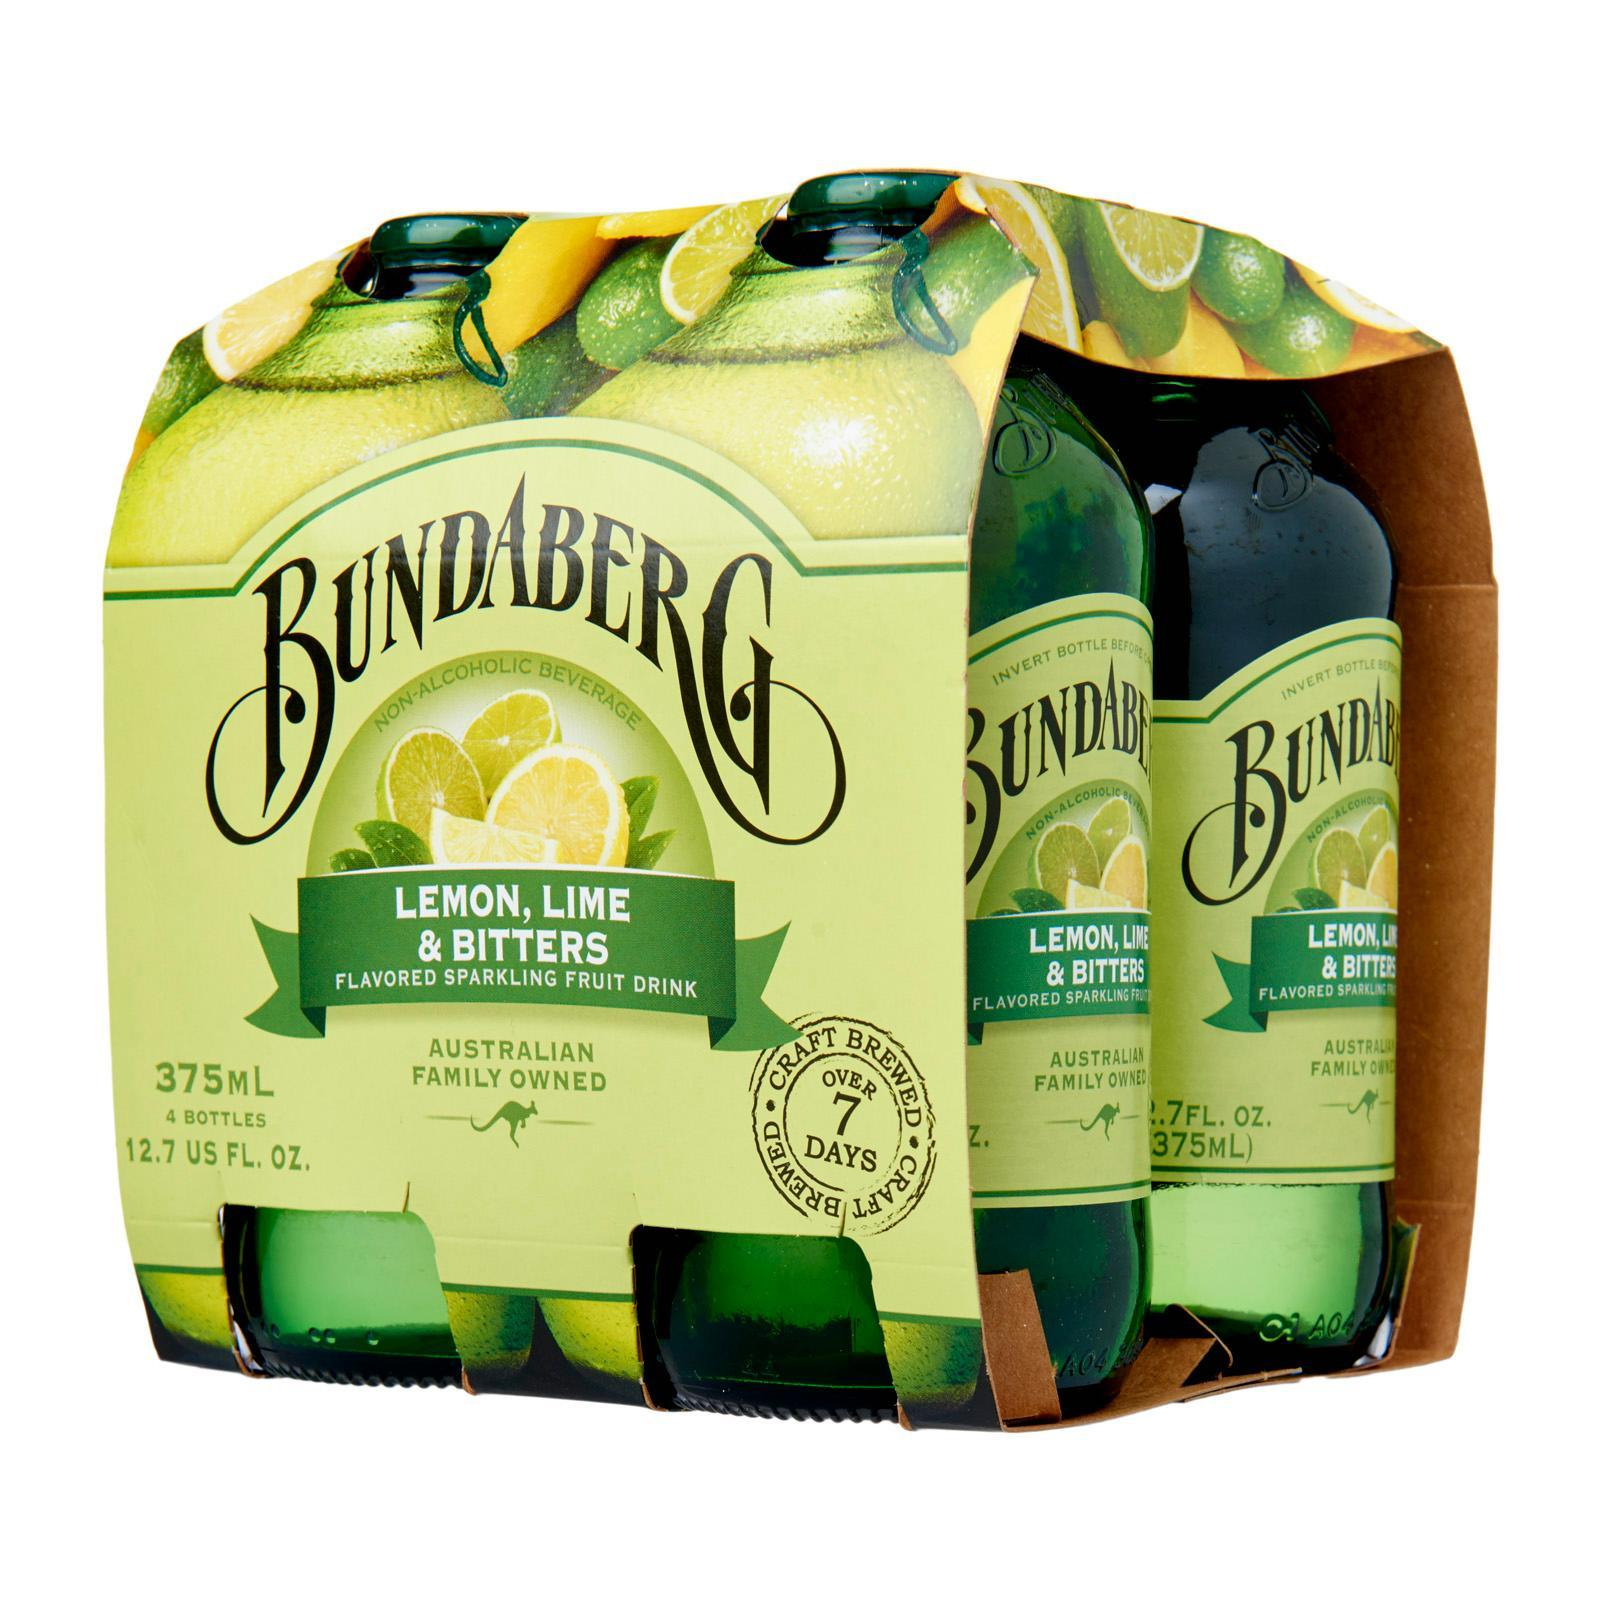 Bundaberg Sparkling Fruit Bottle Drink - Lemon,Lime&Bitters